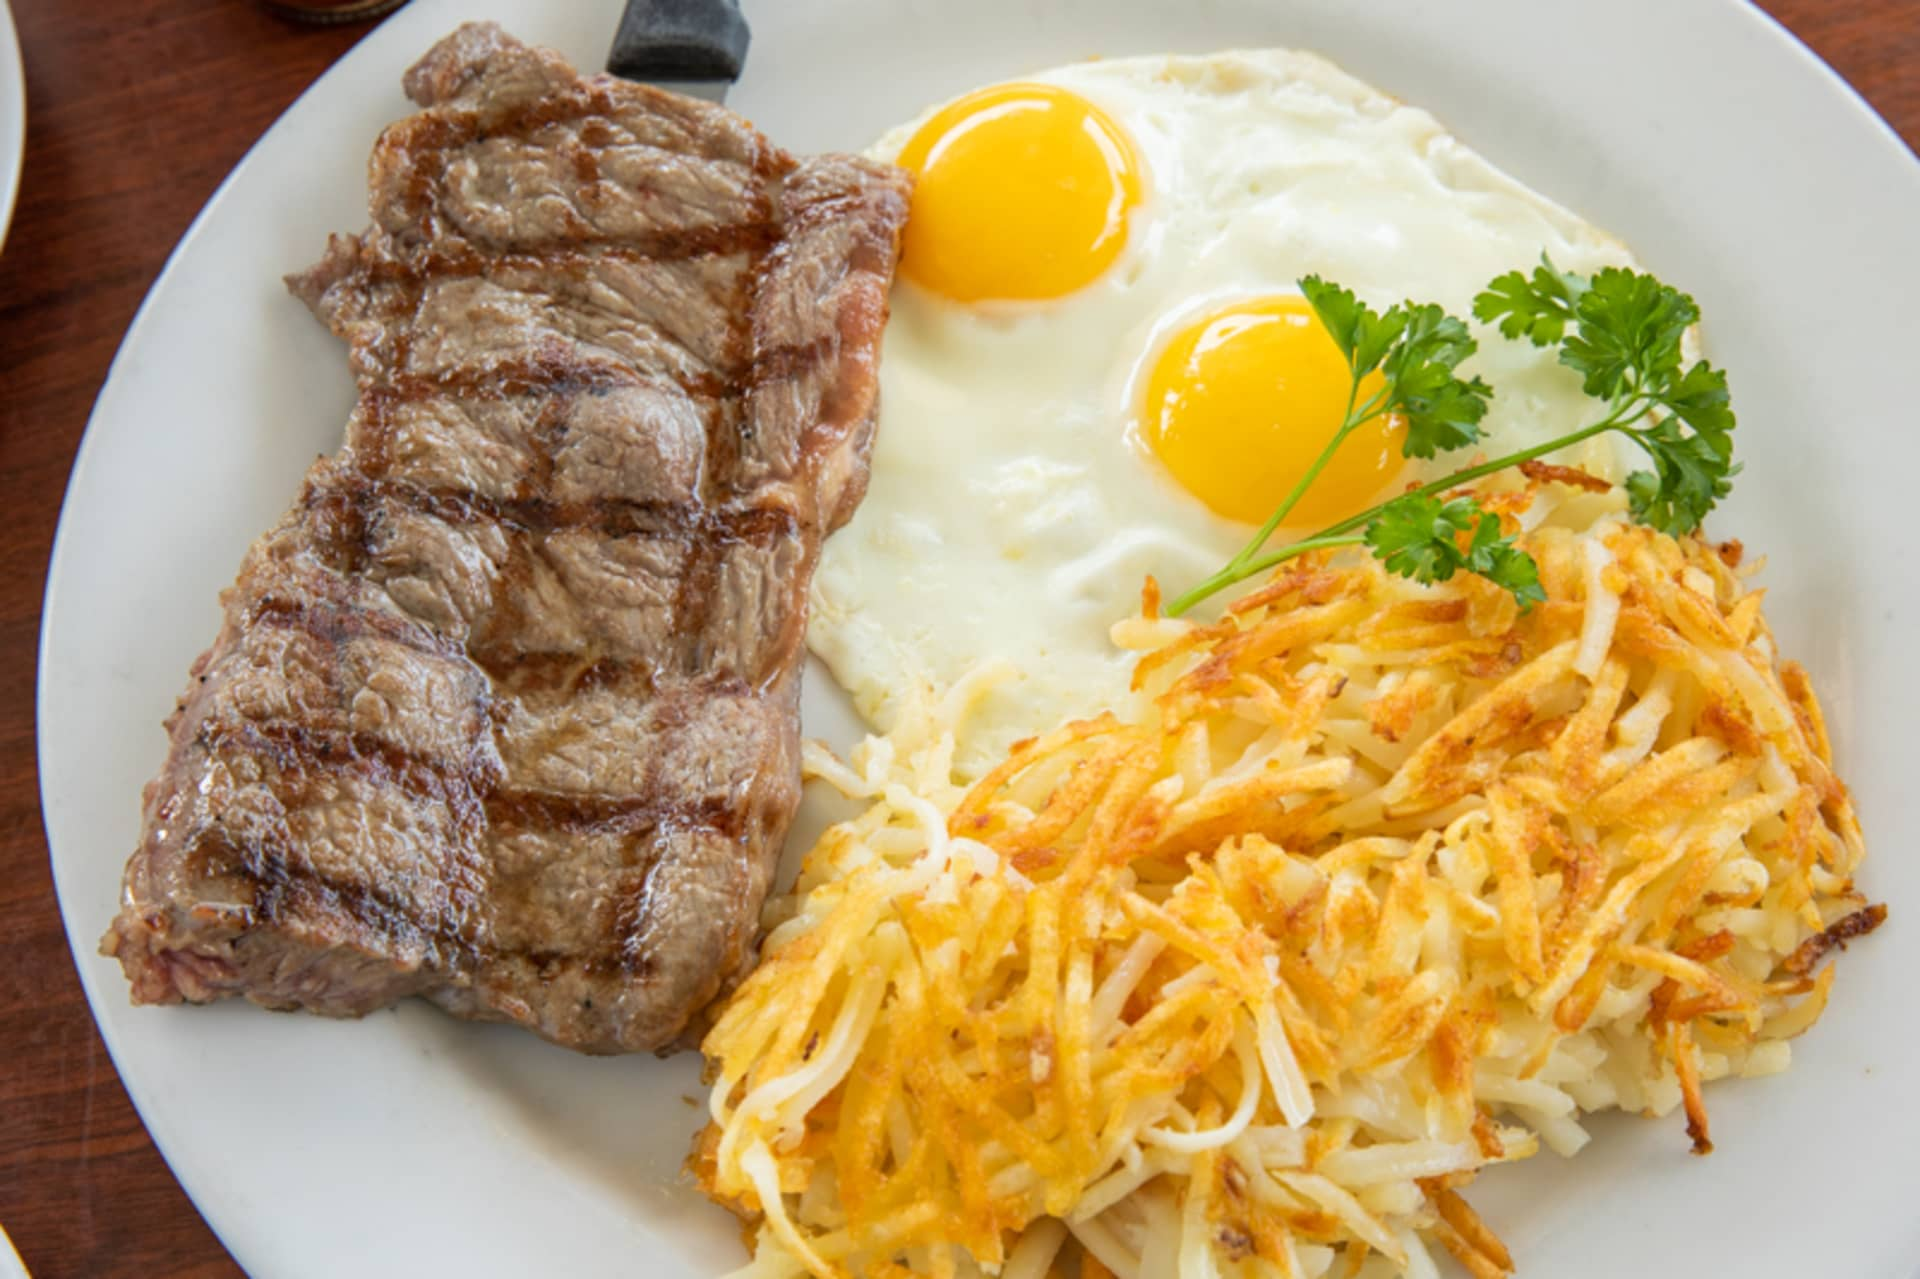 Tuesday - Steak & Eggs